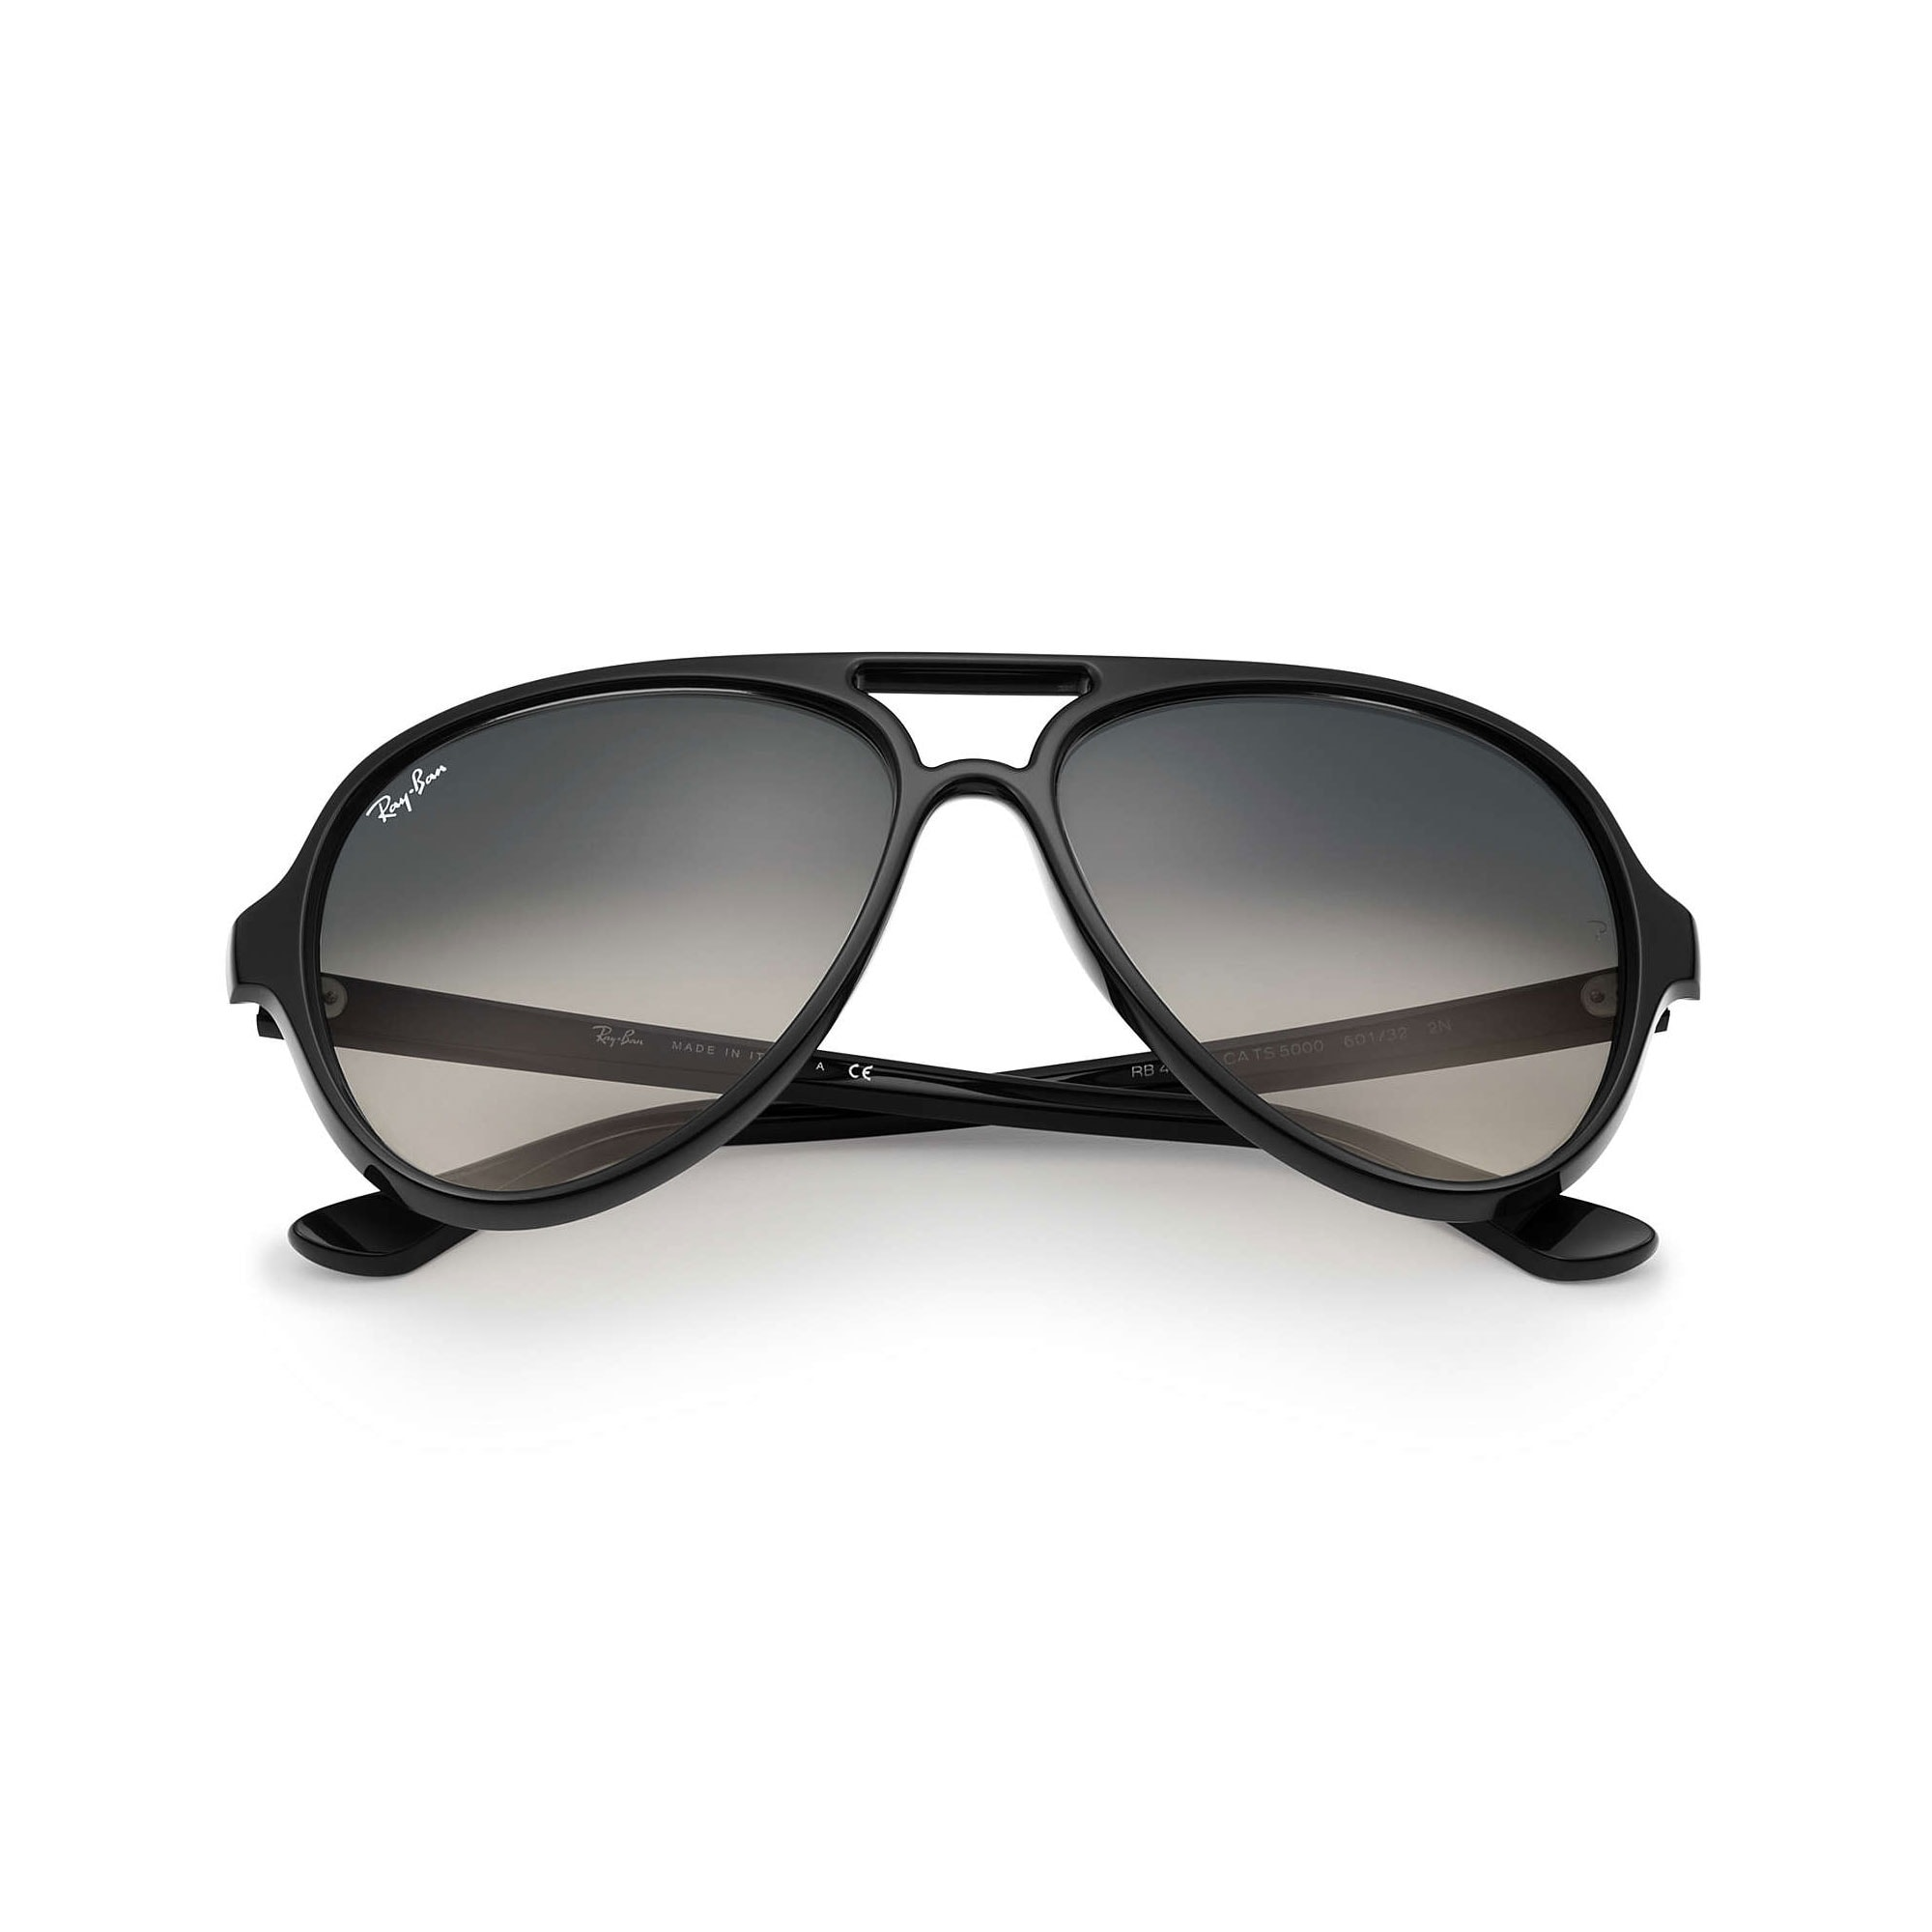 911a451ee3 Shop Ray-Ban RB4125 Cats 5000 Classic Sunglasses 59mm - Free Shipping Today  - Overstock - 24301407